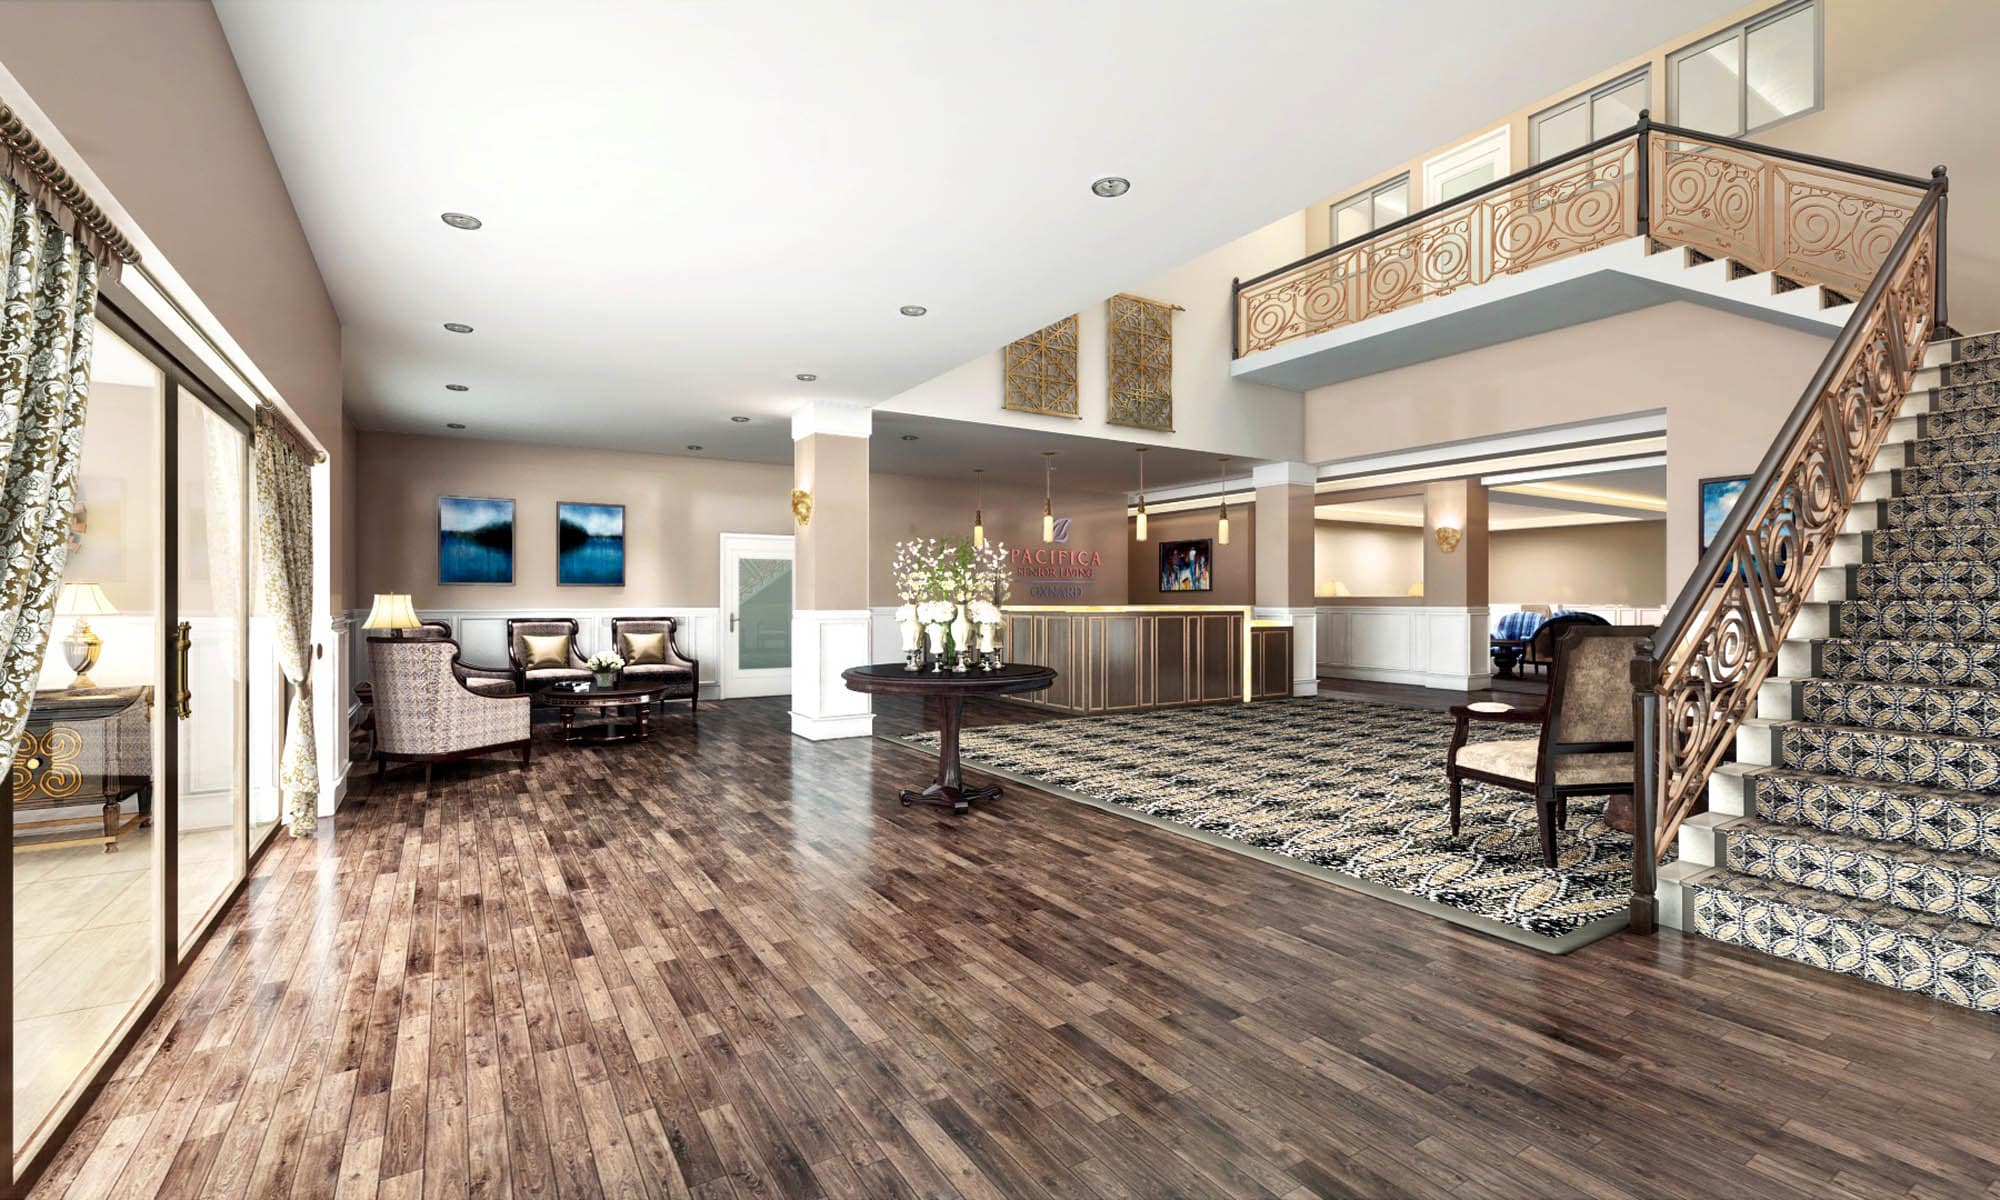 Pacifica Senior Living Retirement Assisted Living Communities - Best flooring for seniors